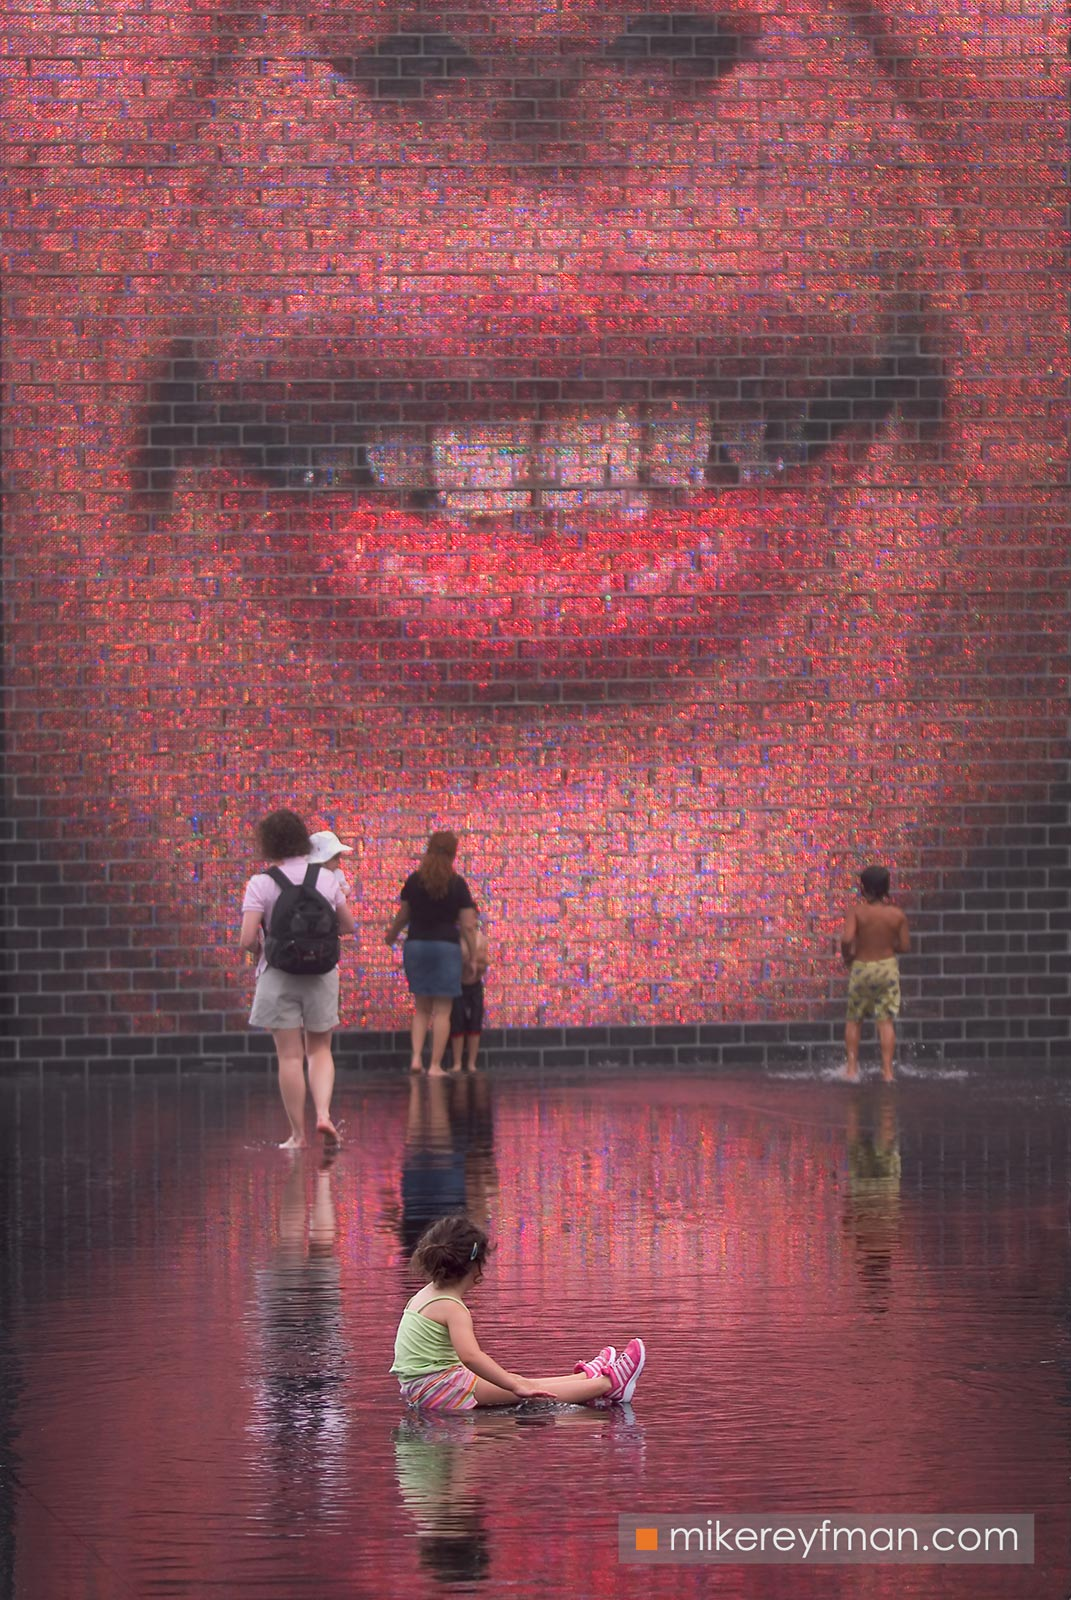 Crown Fountain @ Millennium Park. Chicago, Illinois, USA. 130-CH1-DSCF8979 - Chicago, USA: The